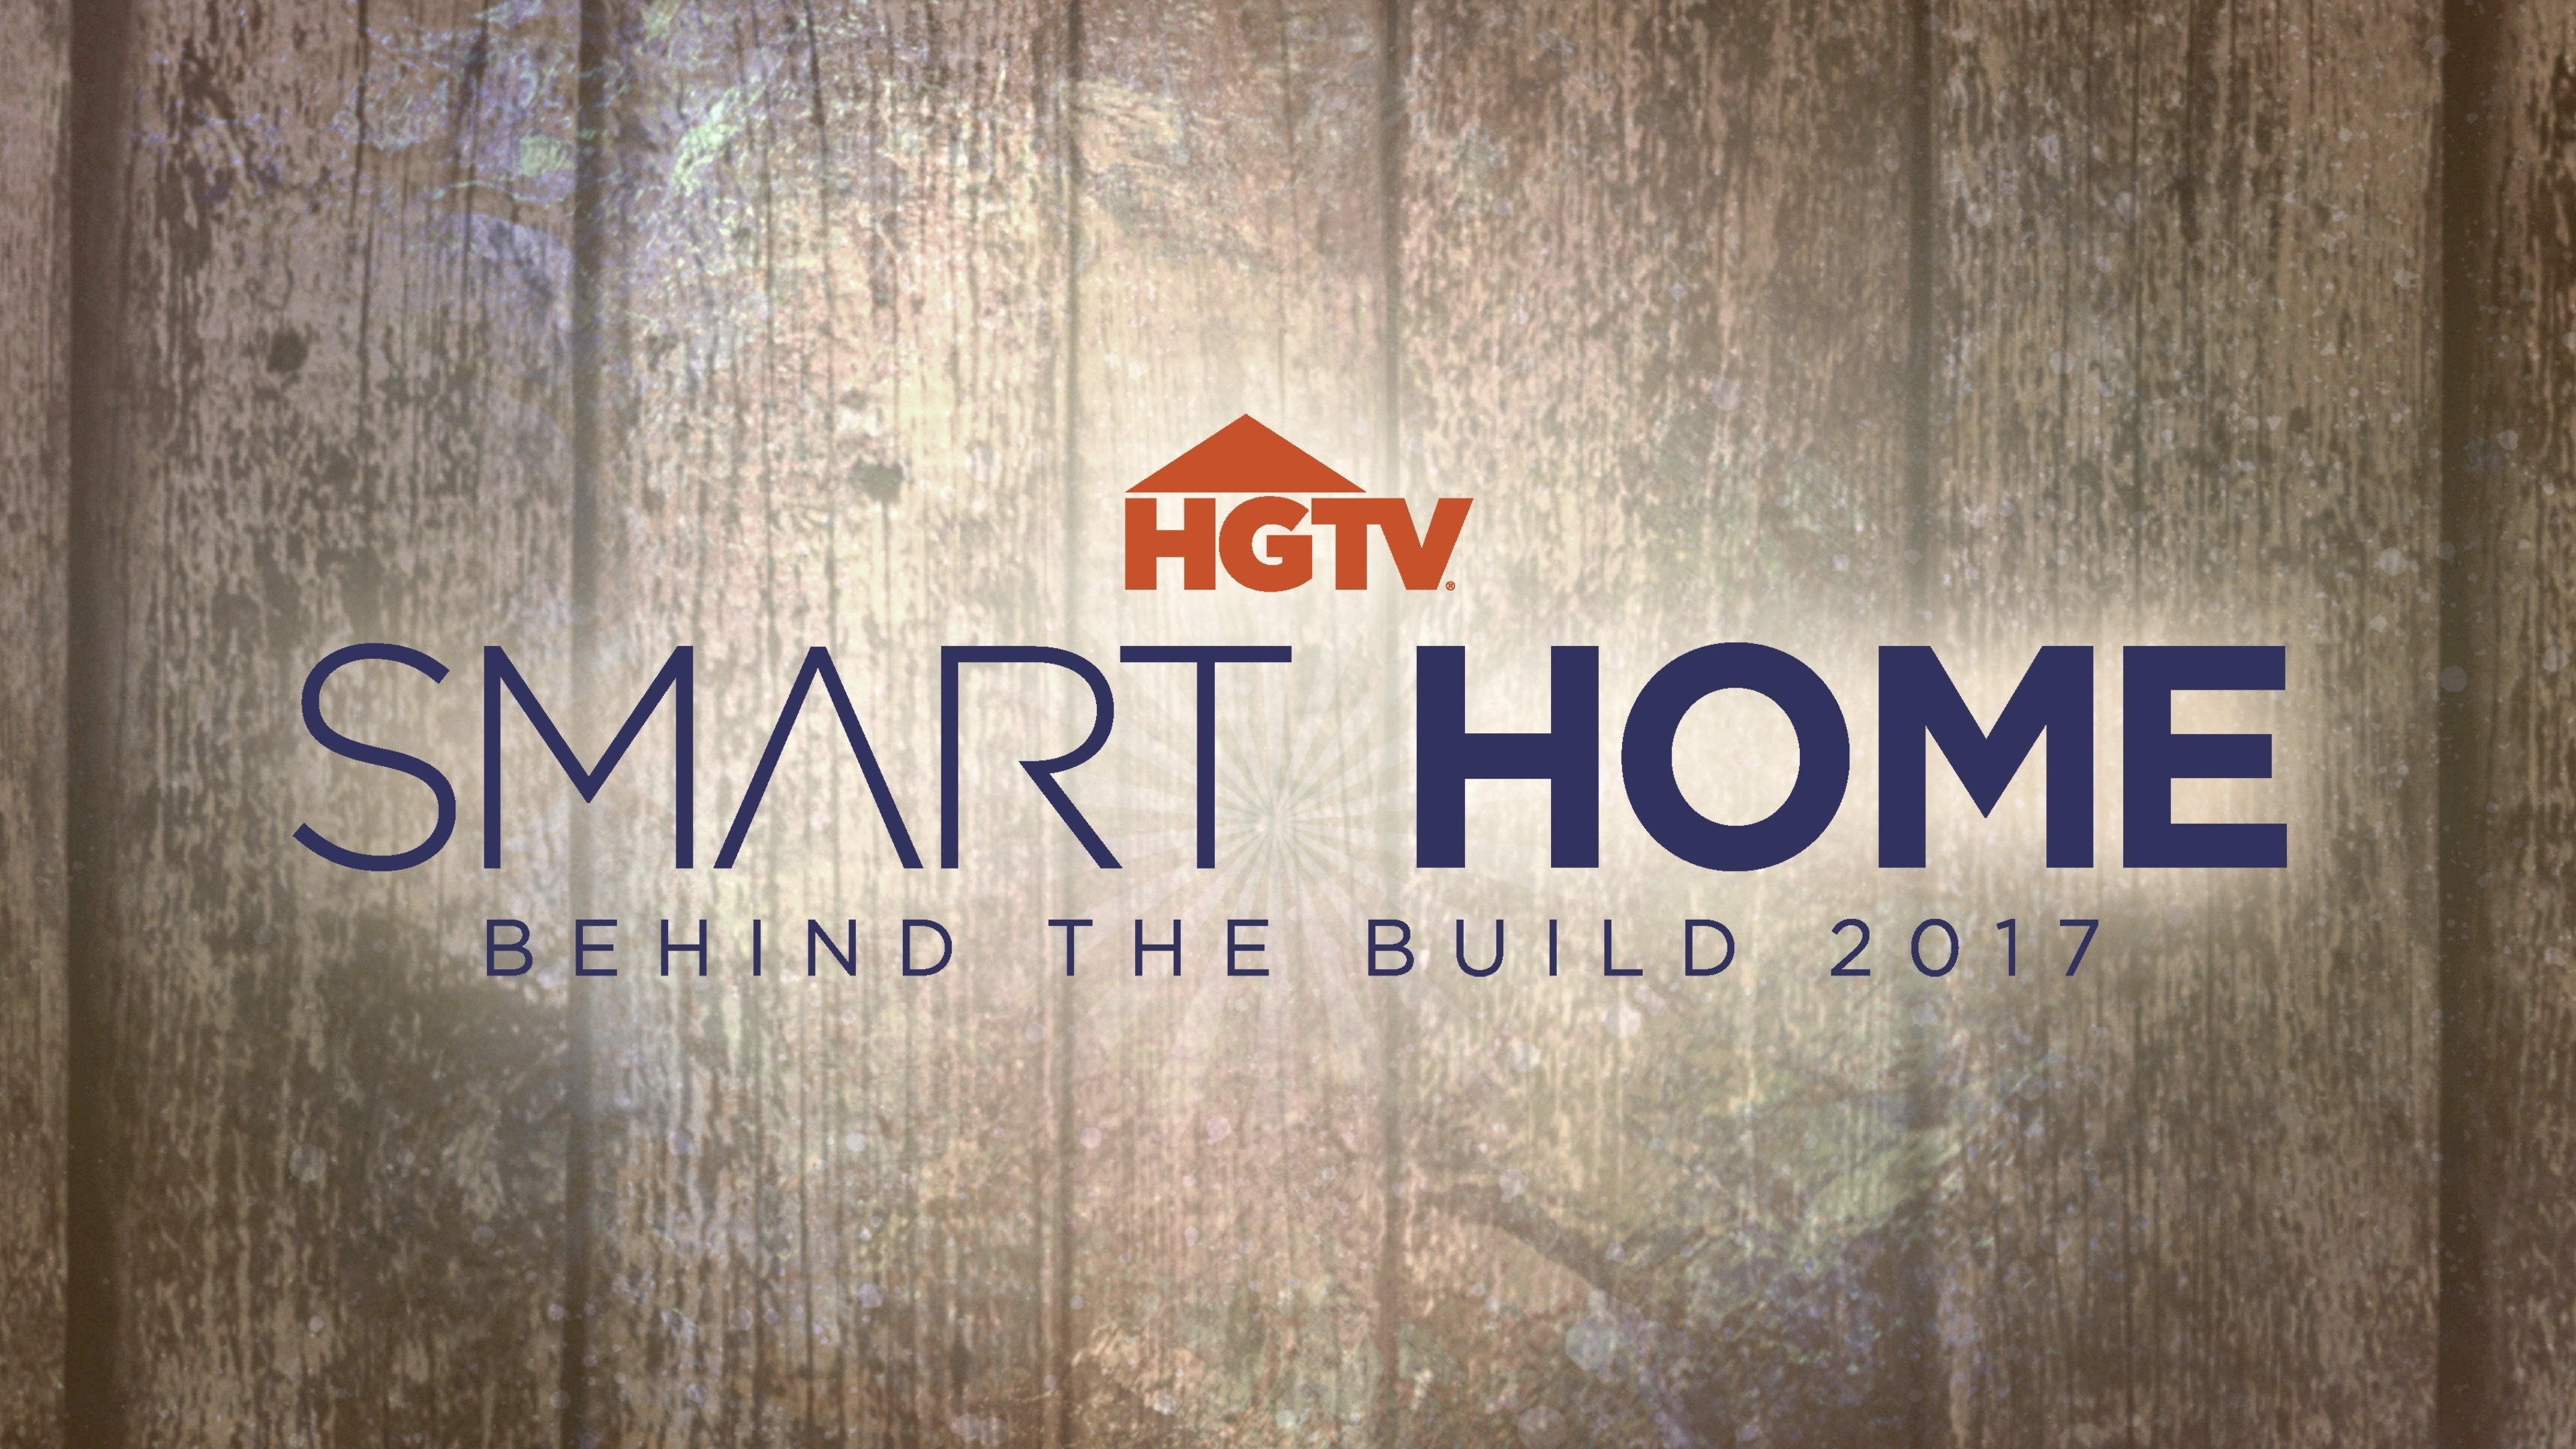 Behind the Build: HGTV Smart Home 2017